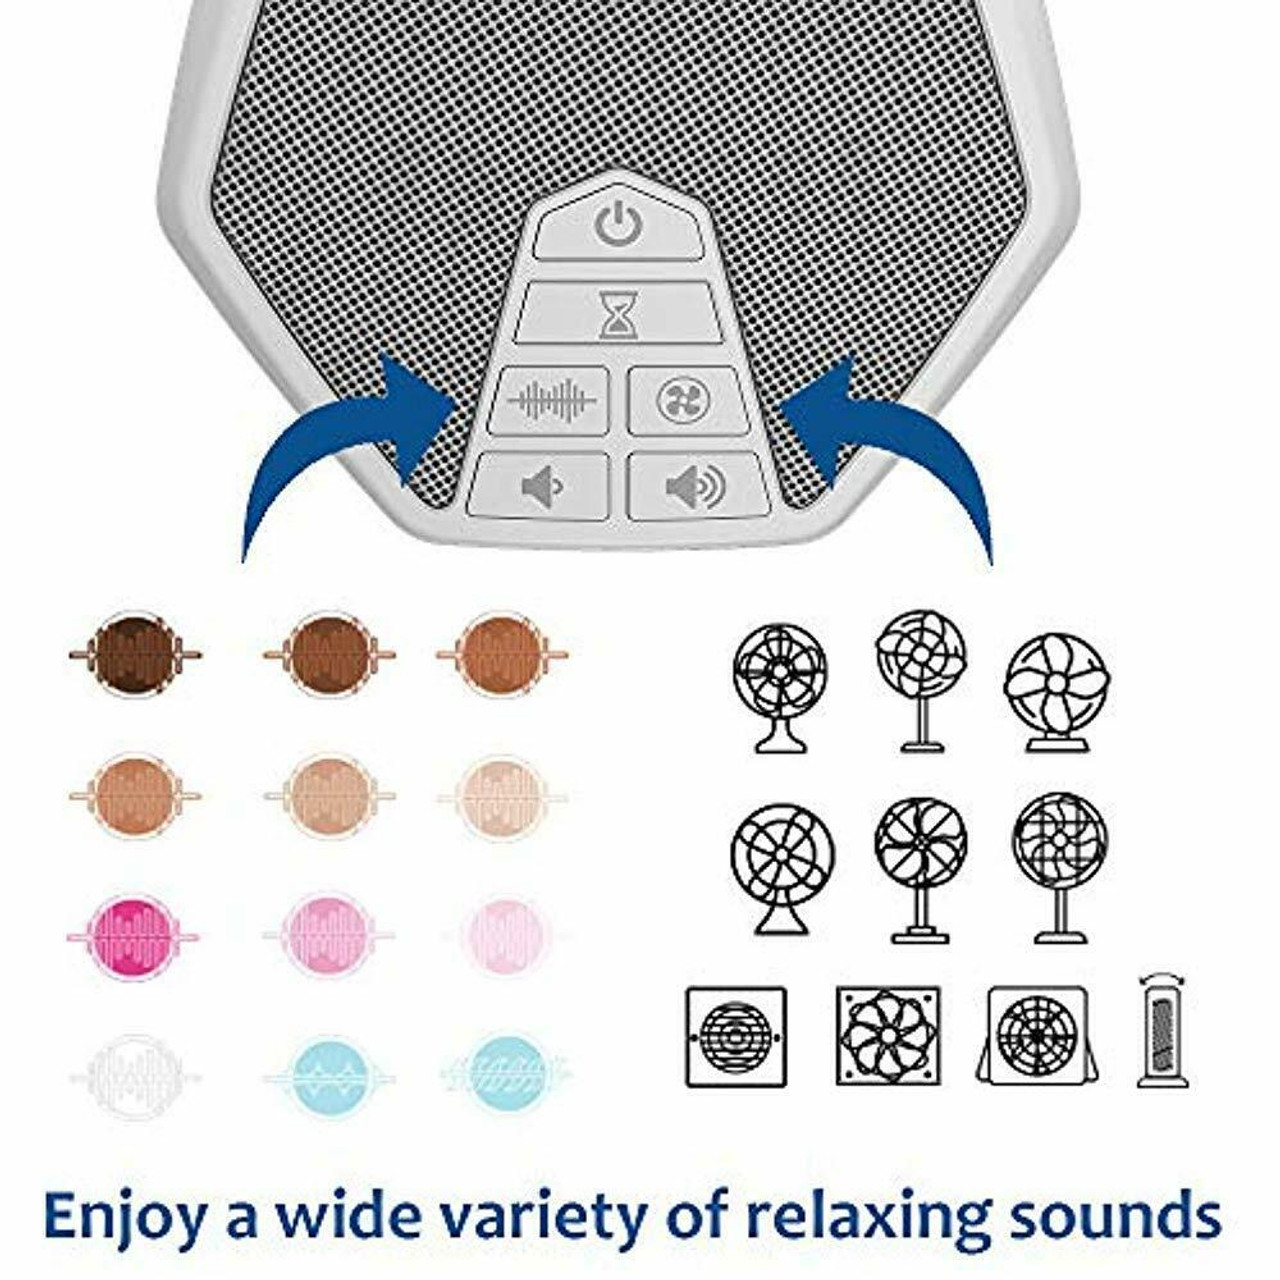 LectroFan Evo ASM1020-WK-RB White Noise Sound Machine with 22 Unique Non-Looping Fan and White Noise Sounds and Sleep Timer, White & Gray - Certified Refurbished